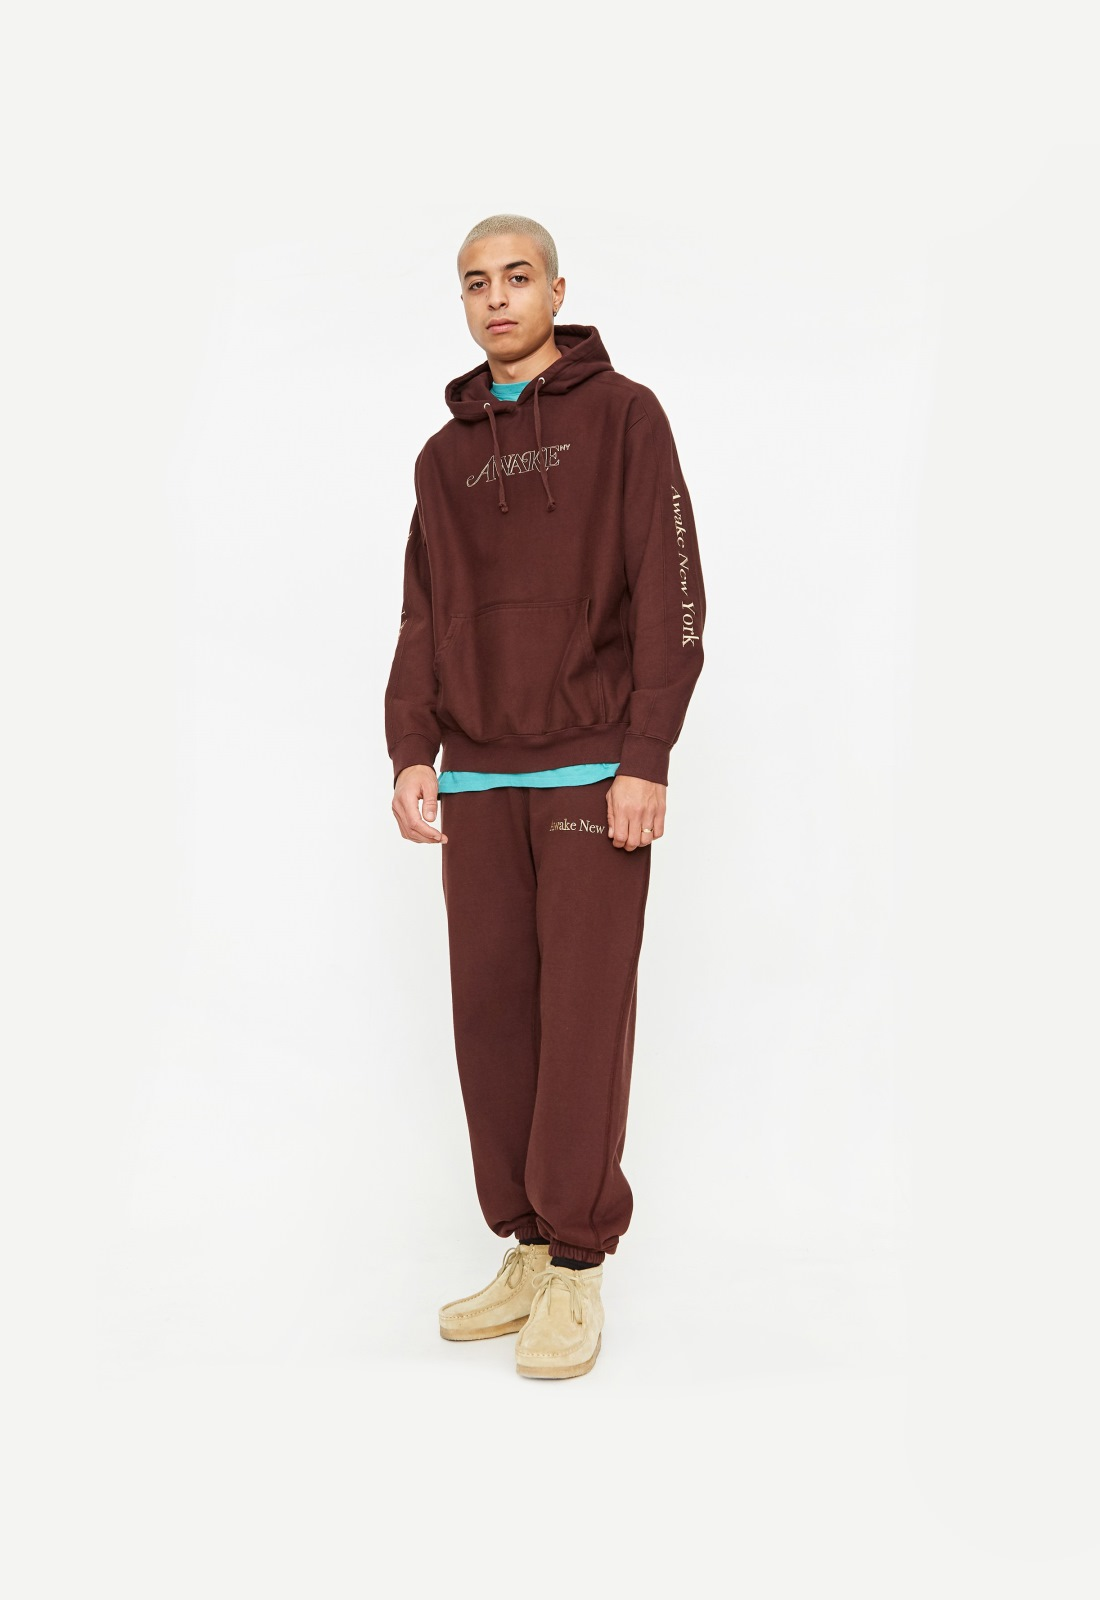 Awake Classic Outline Logo Paneled Embroidered Hoodie Brown 3